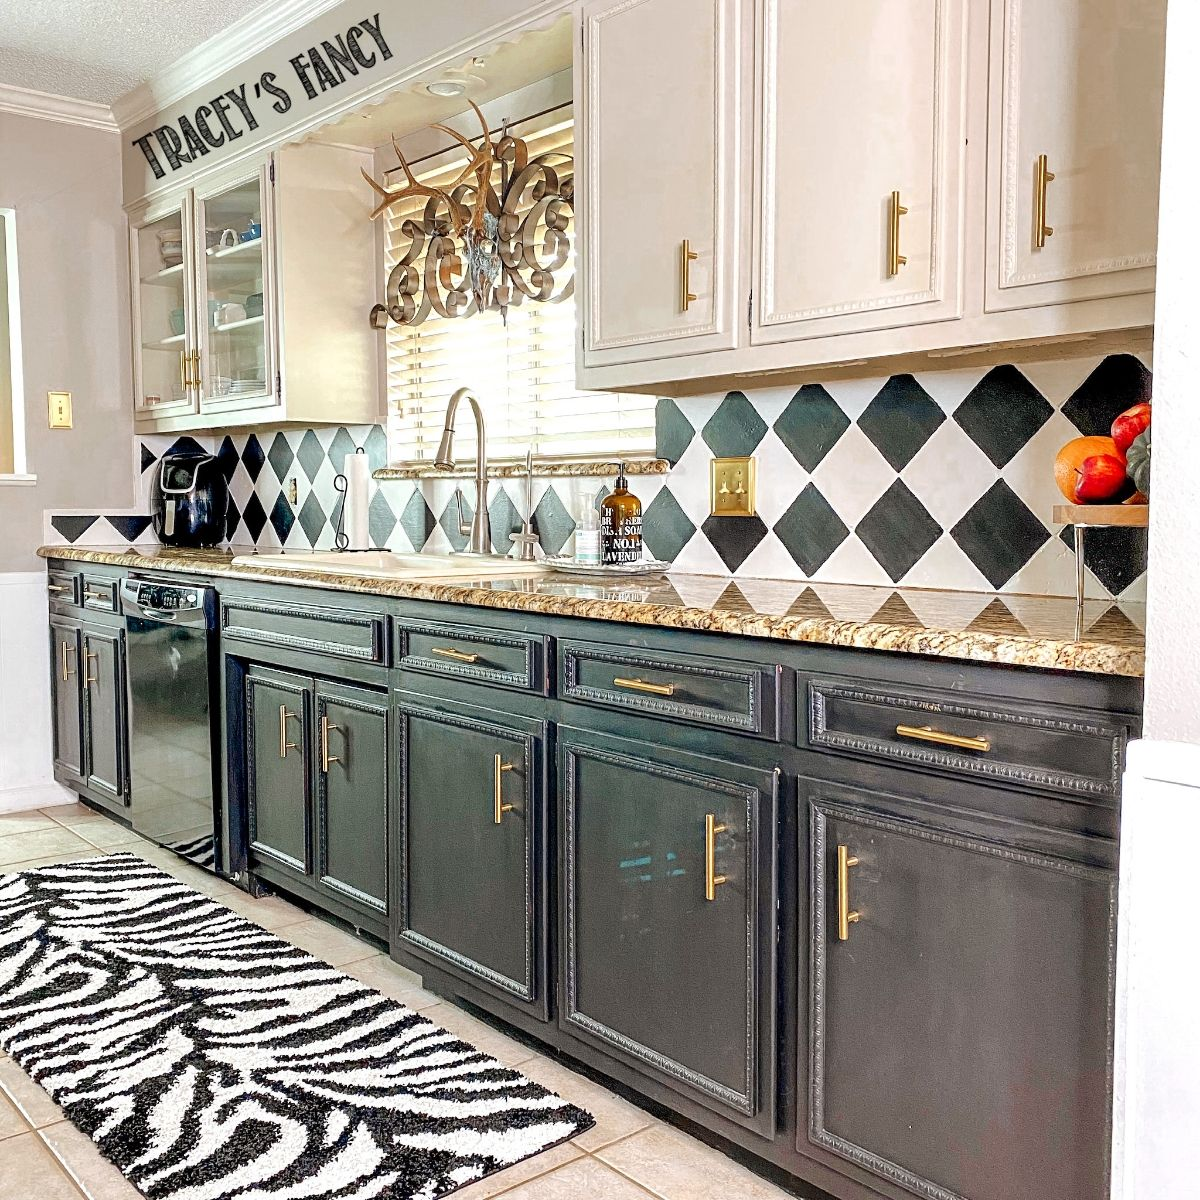 - How To Paint Backsplash Tiles With Chalk Paint - Tracey's Fancy